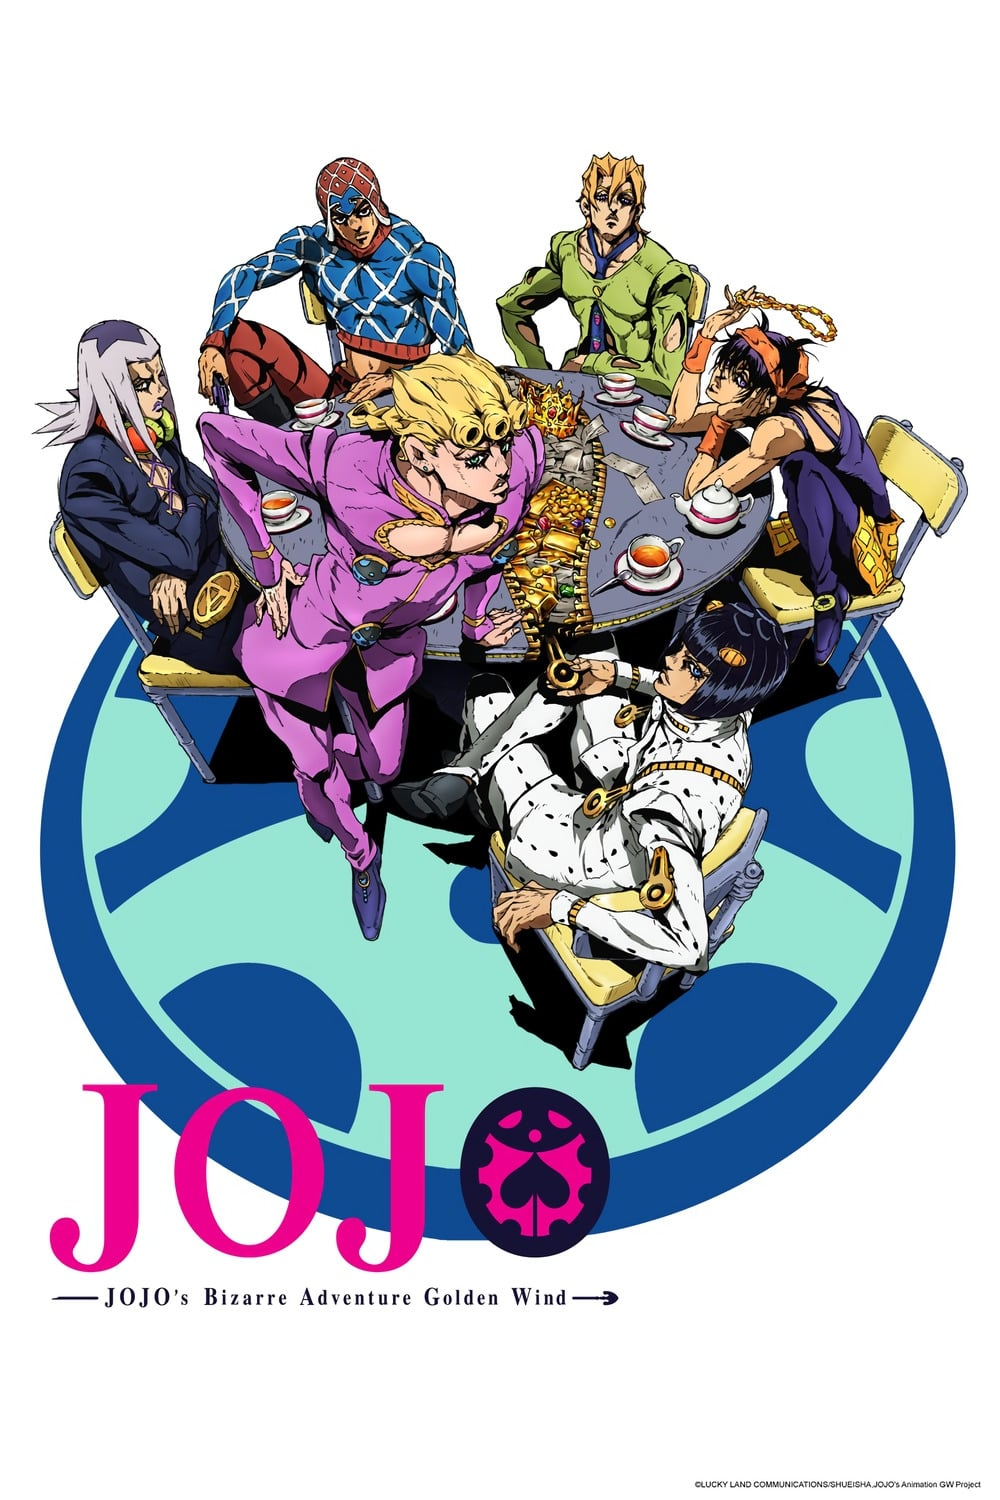 JoJo's Bizarre Adventure Season 4